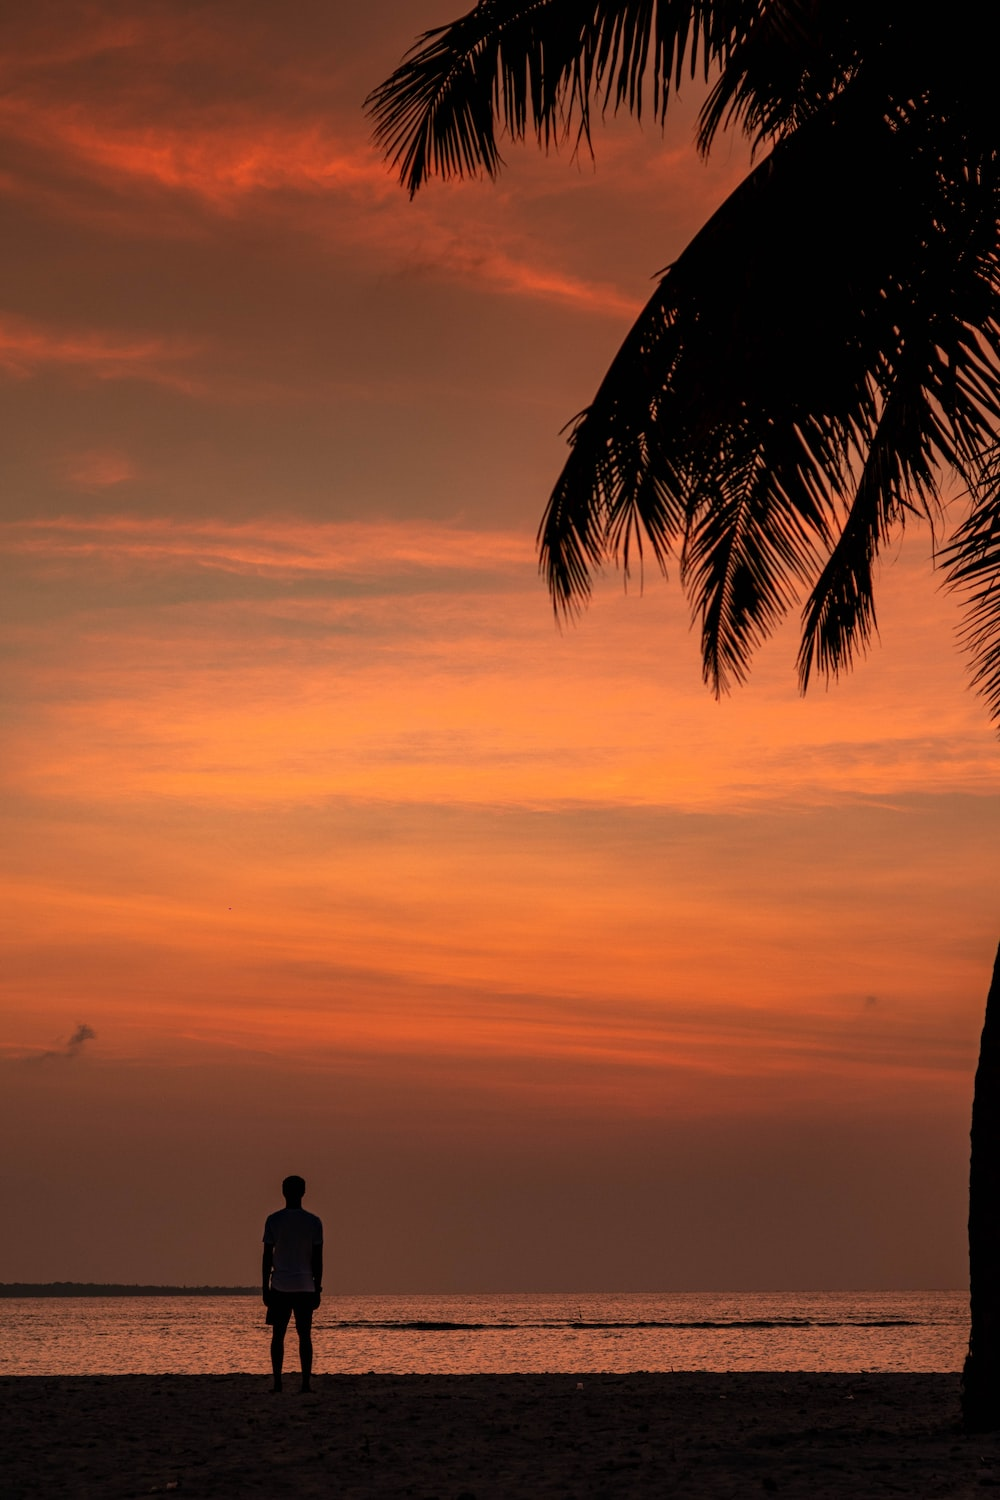 silhouette of man standing near palm tree during sunset